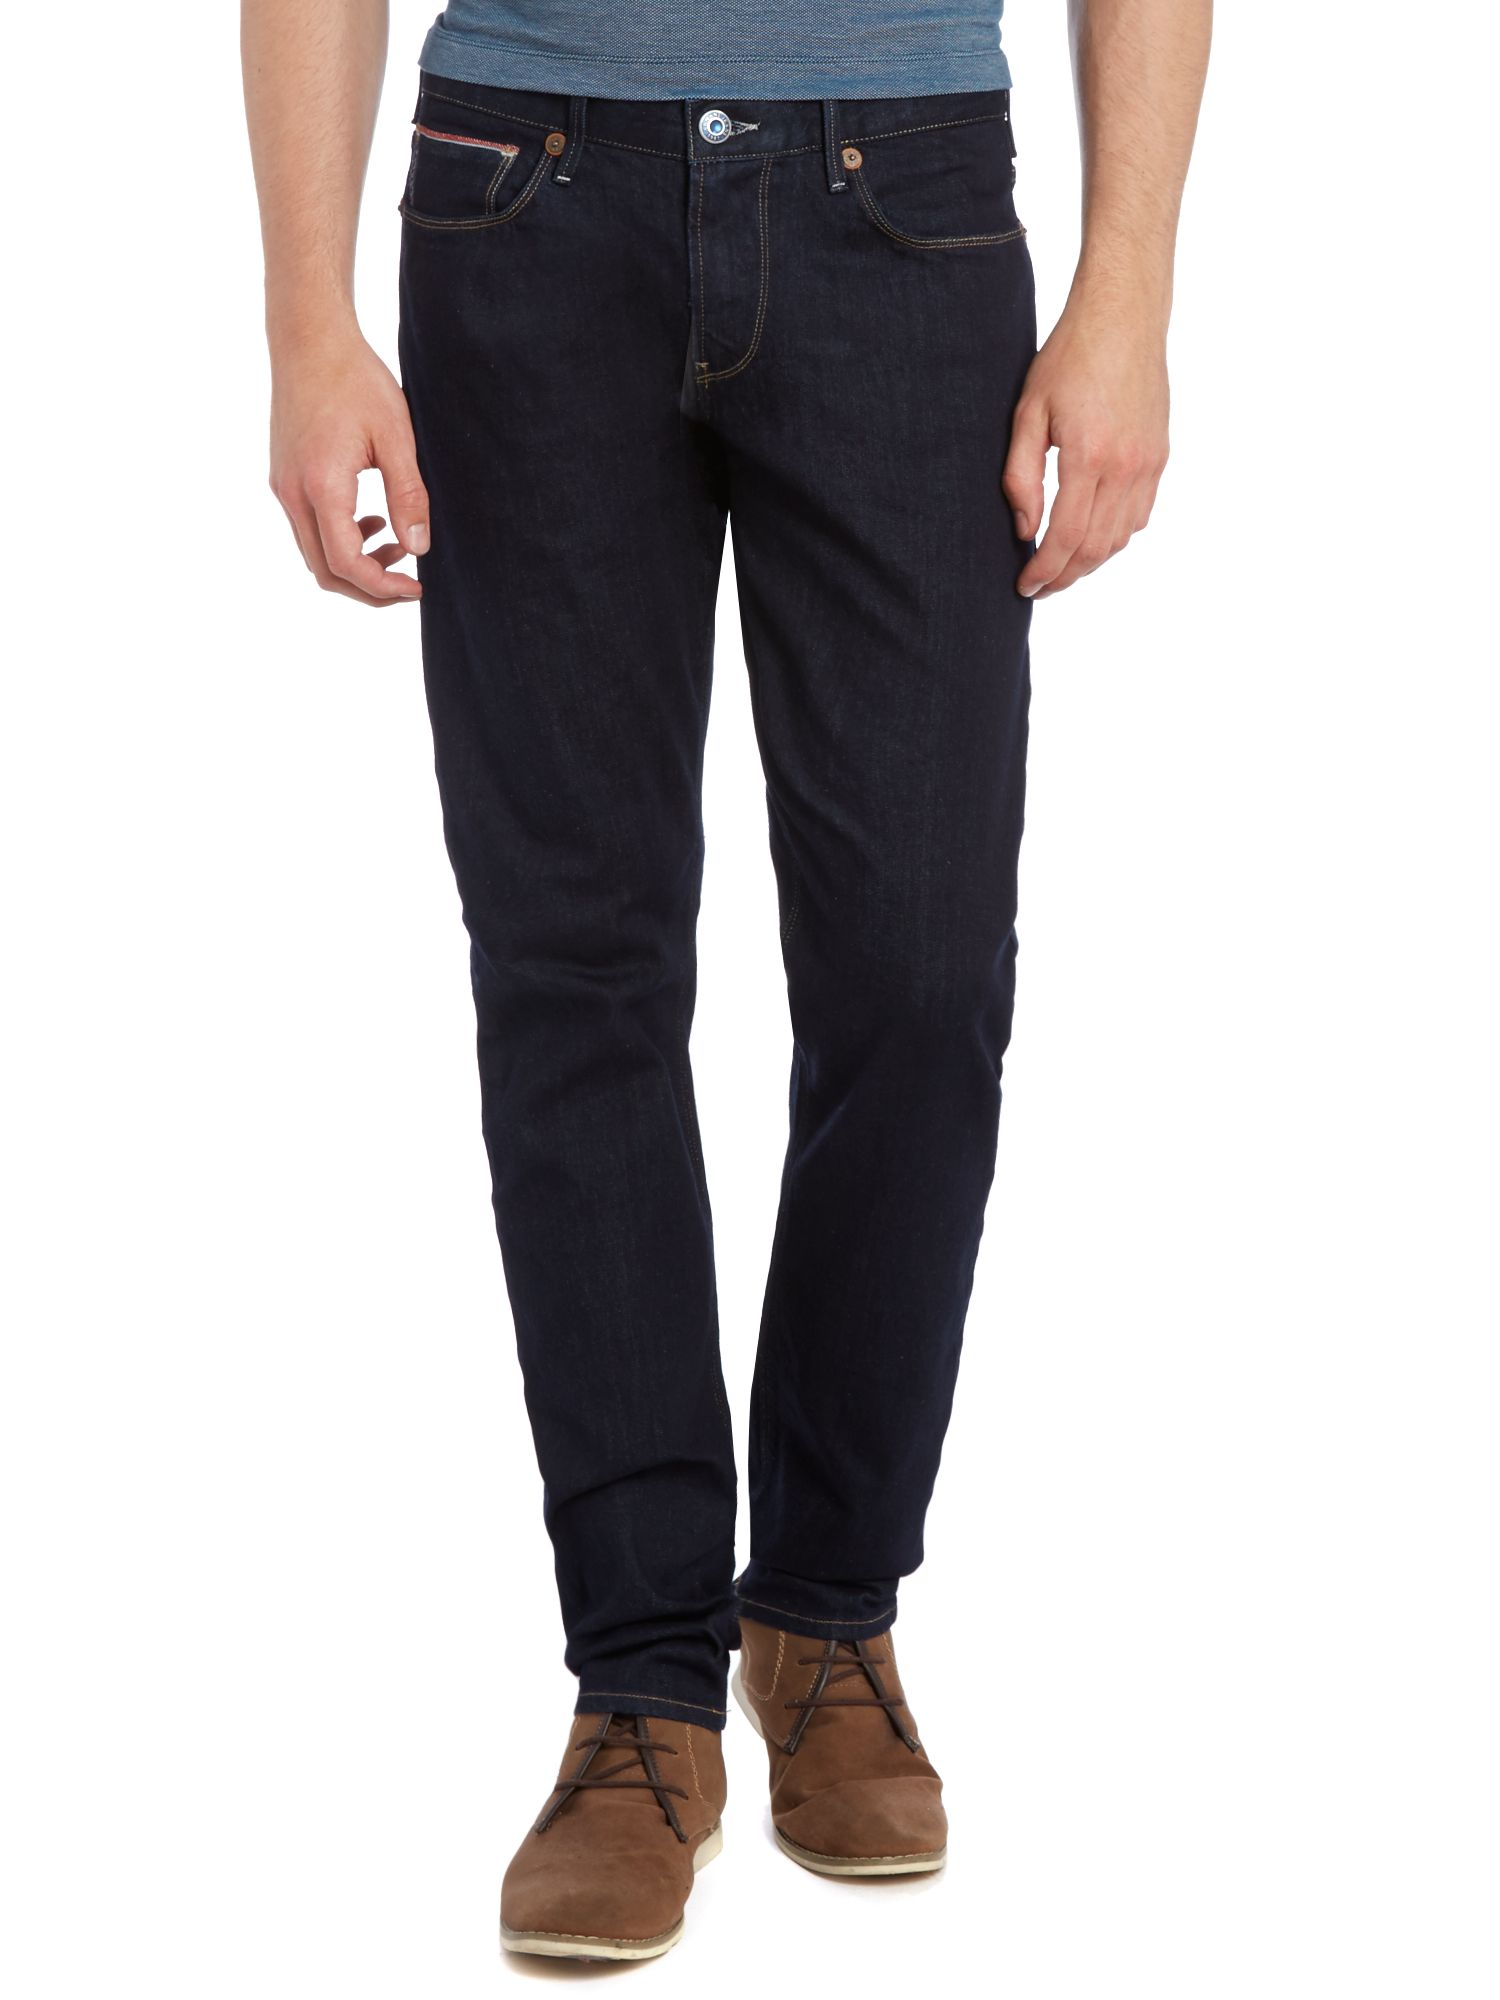 J06 slim leg tapered indigo jeans